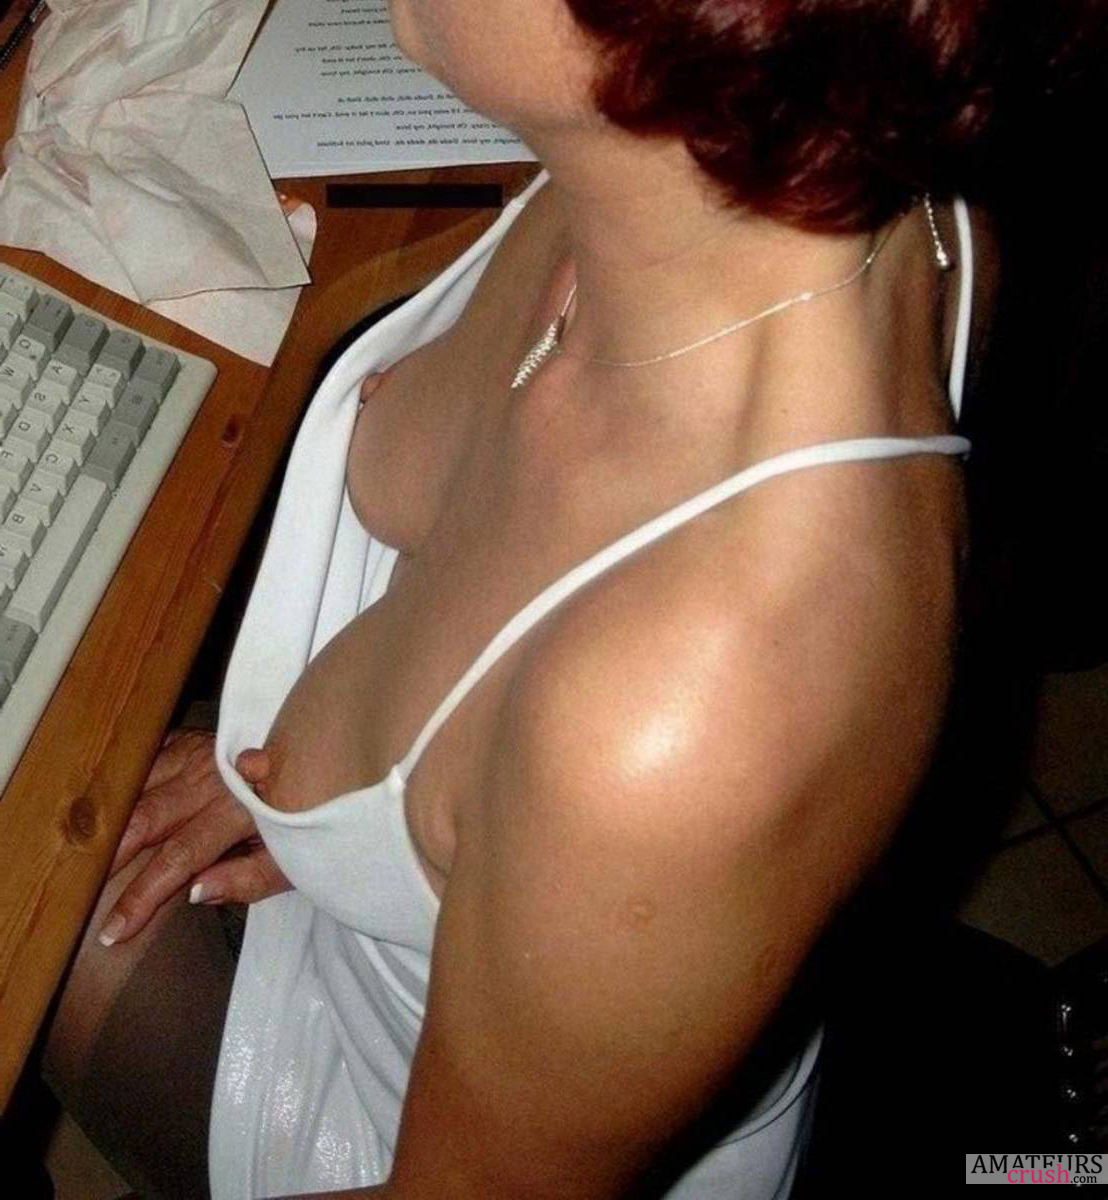 Down blouse peek boob